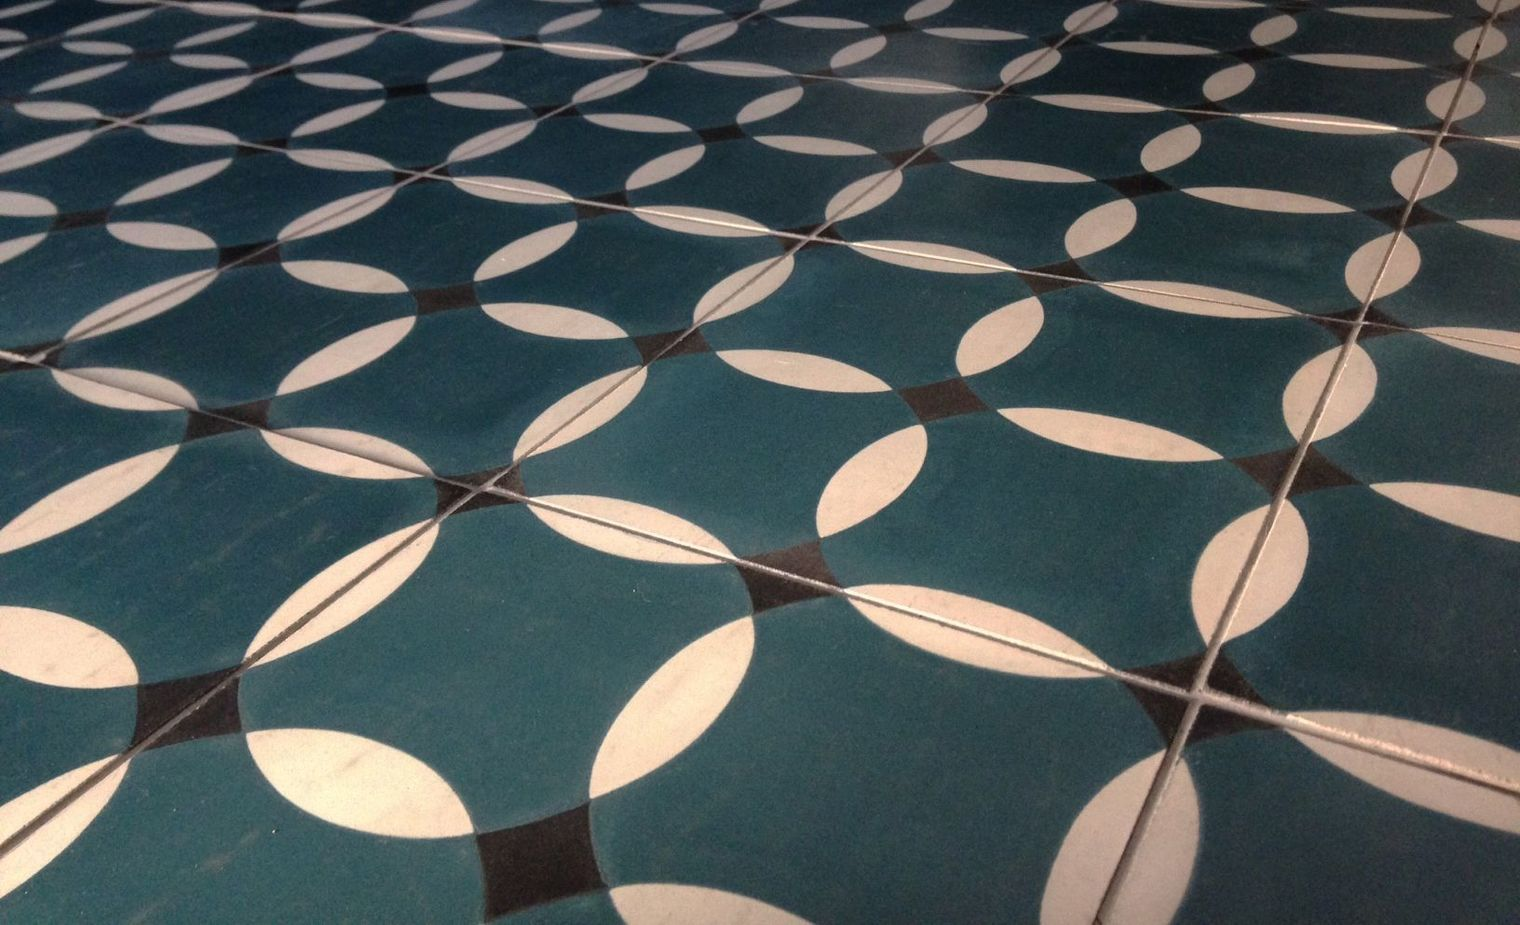 epingle sur deco carreaux carrelage